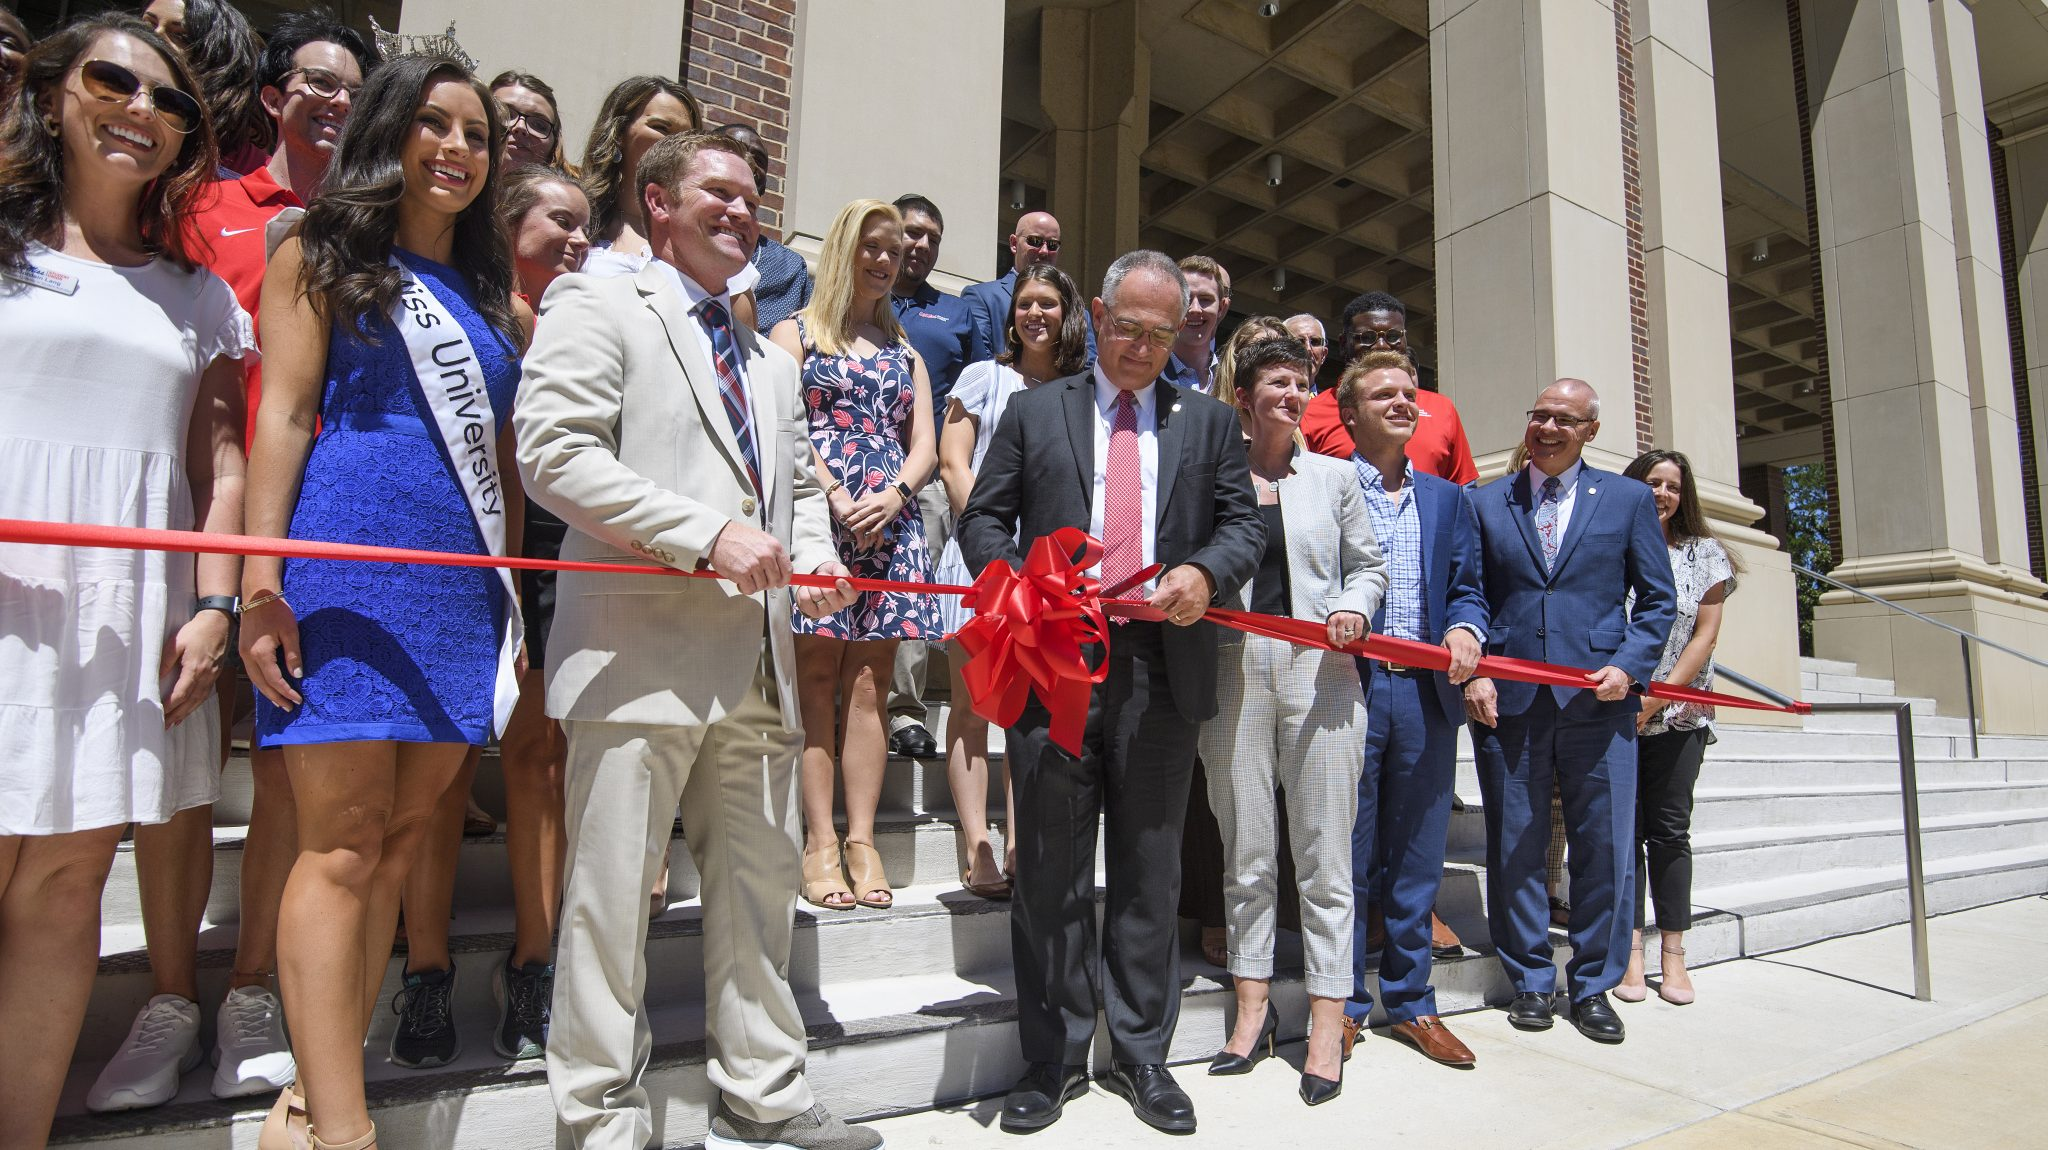 University of Mississippi officials cut the ribbon on the expanded and renovated Ole Miss Student Union on Thursday, Aug. 29, 2019. Photo by Thomas Graning/Ole Miss Digital Imaging Services